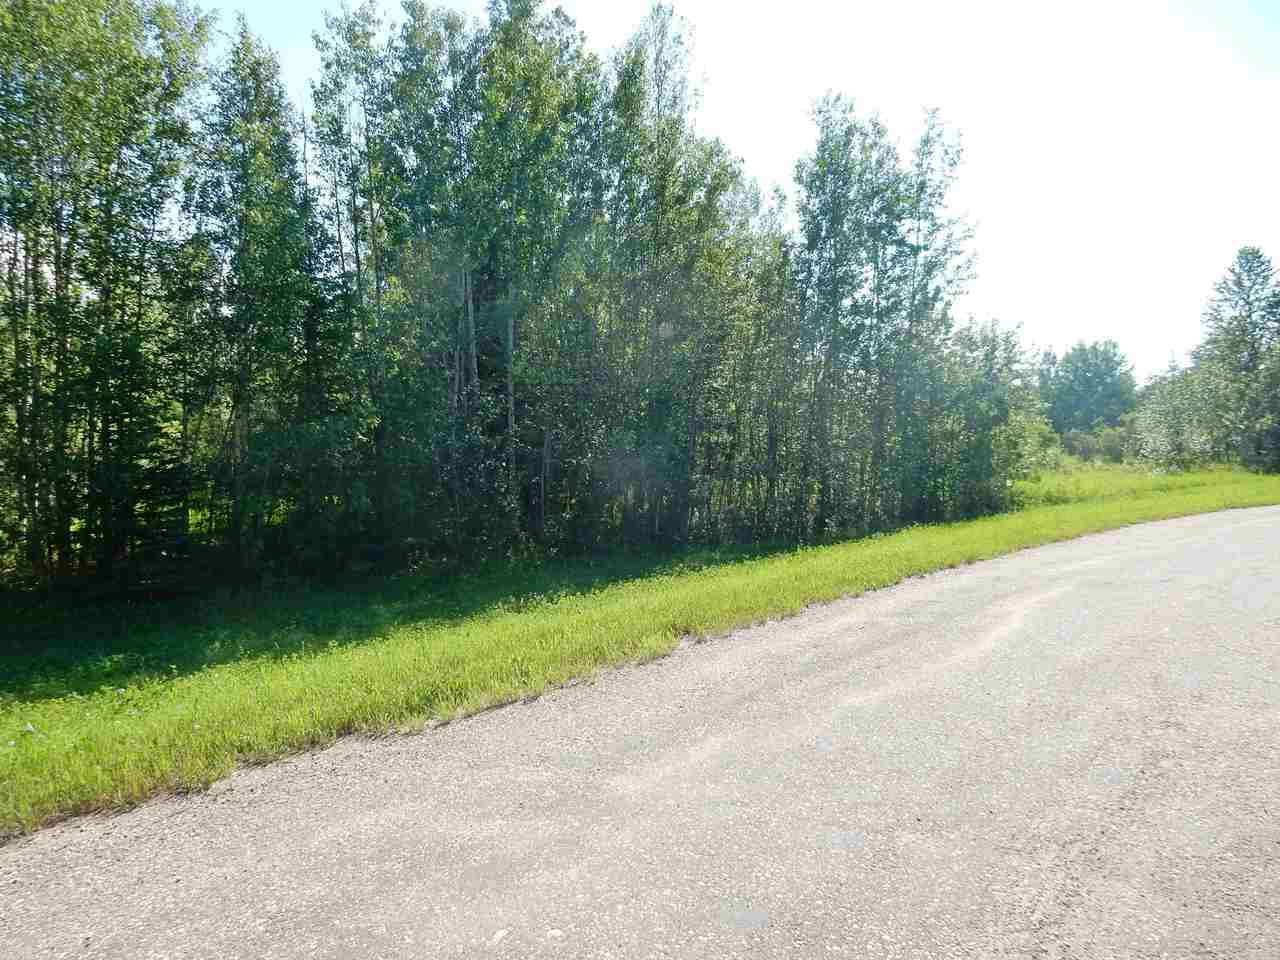 Photo 7: LOT 18 Pinebrook Estates: Rural Thorhild County Rural Land/Vacant Lot for sale : MLS® # E4010007